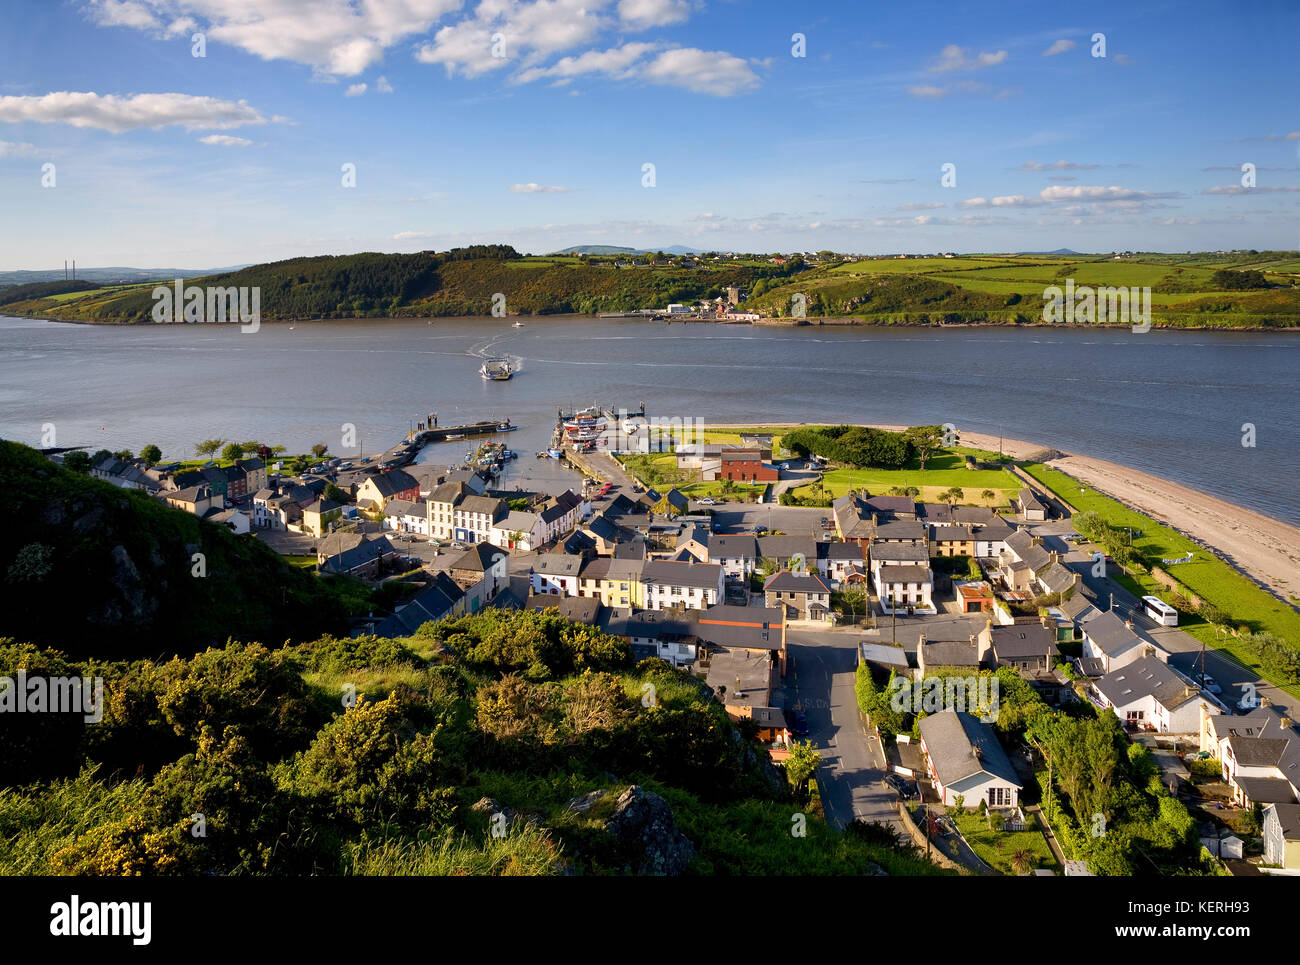 south londonderry catholic singles Places to visit in derry  south county derry: moneymore (1) strabane (1) map showing places to visit in derry  co londonderry, .